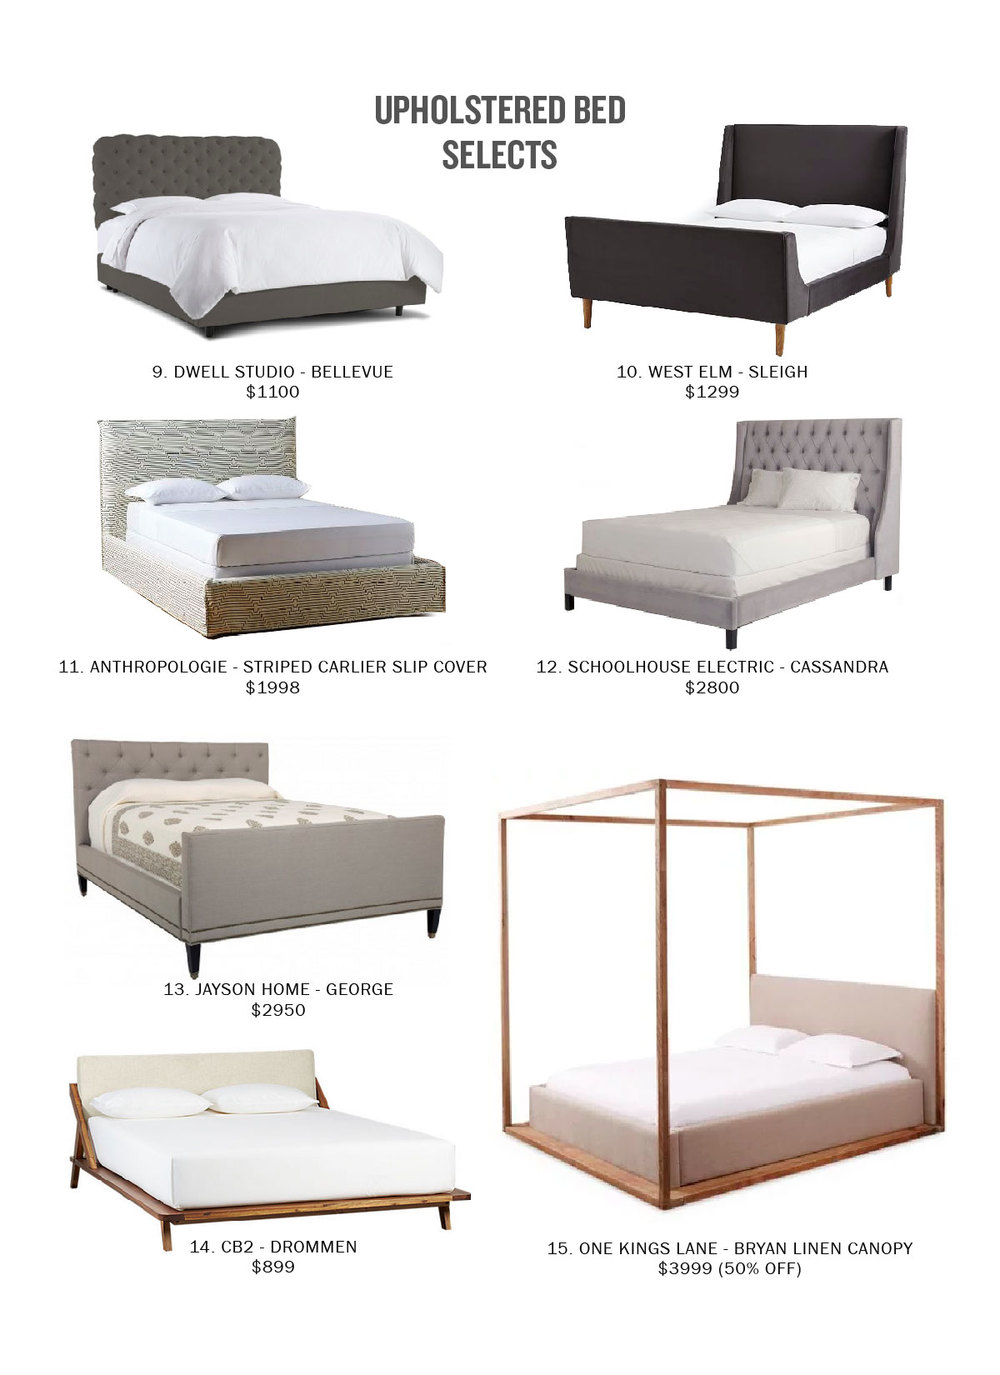 Upholstered bed selects by Casework